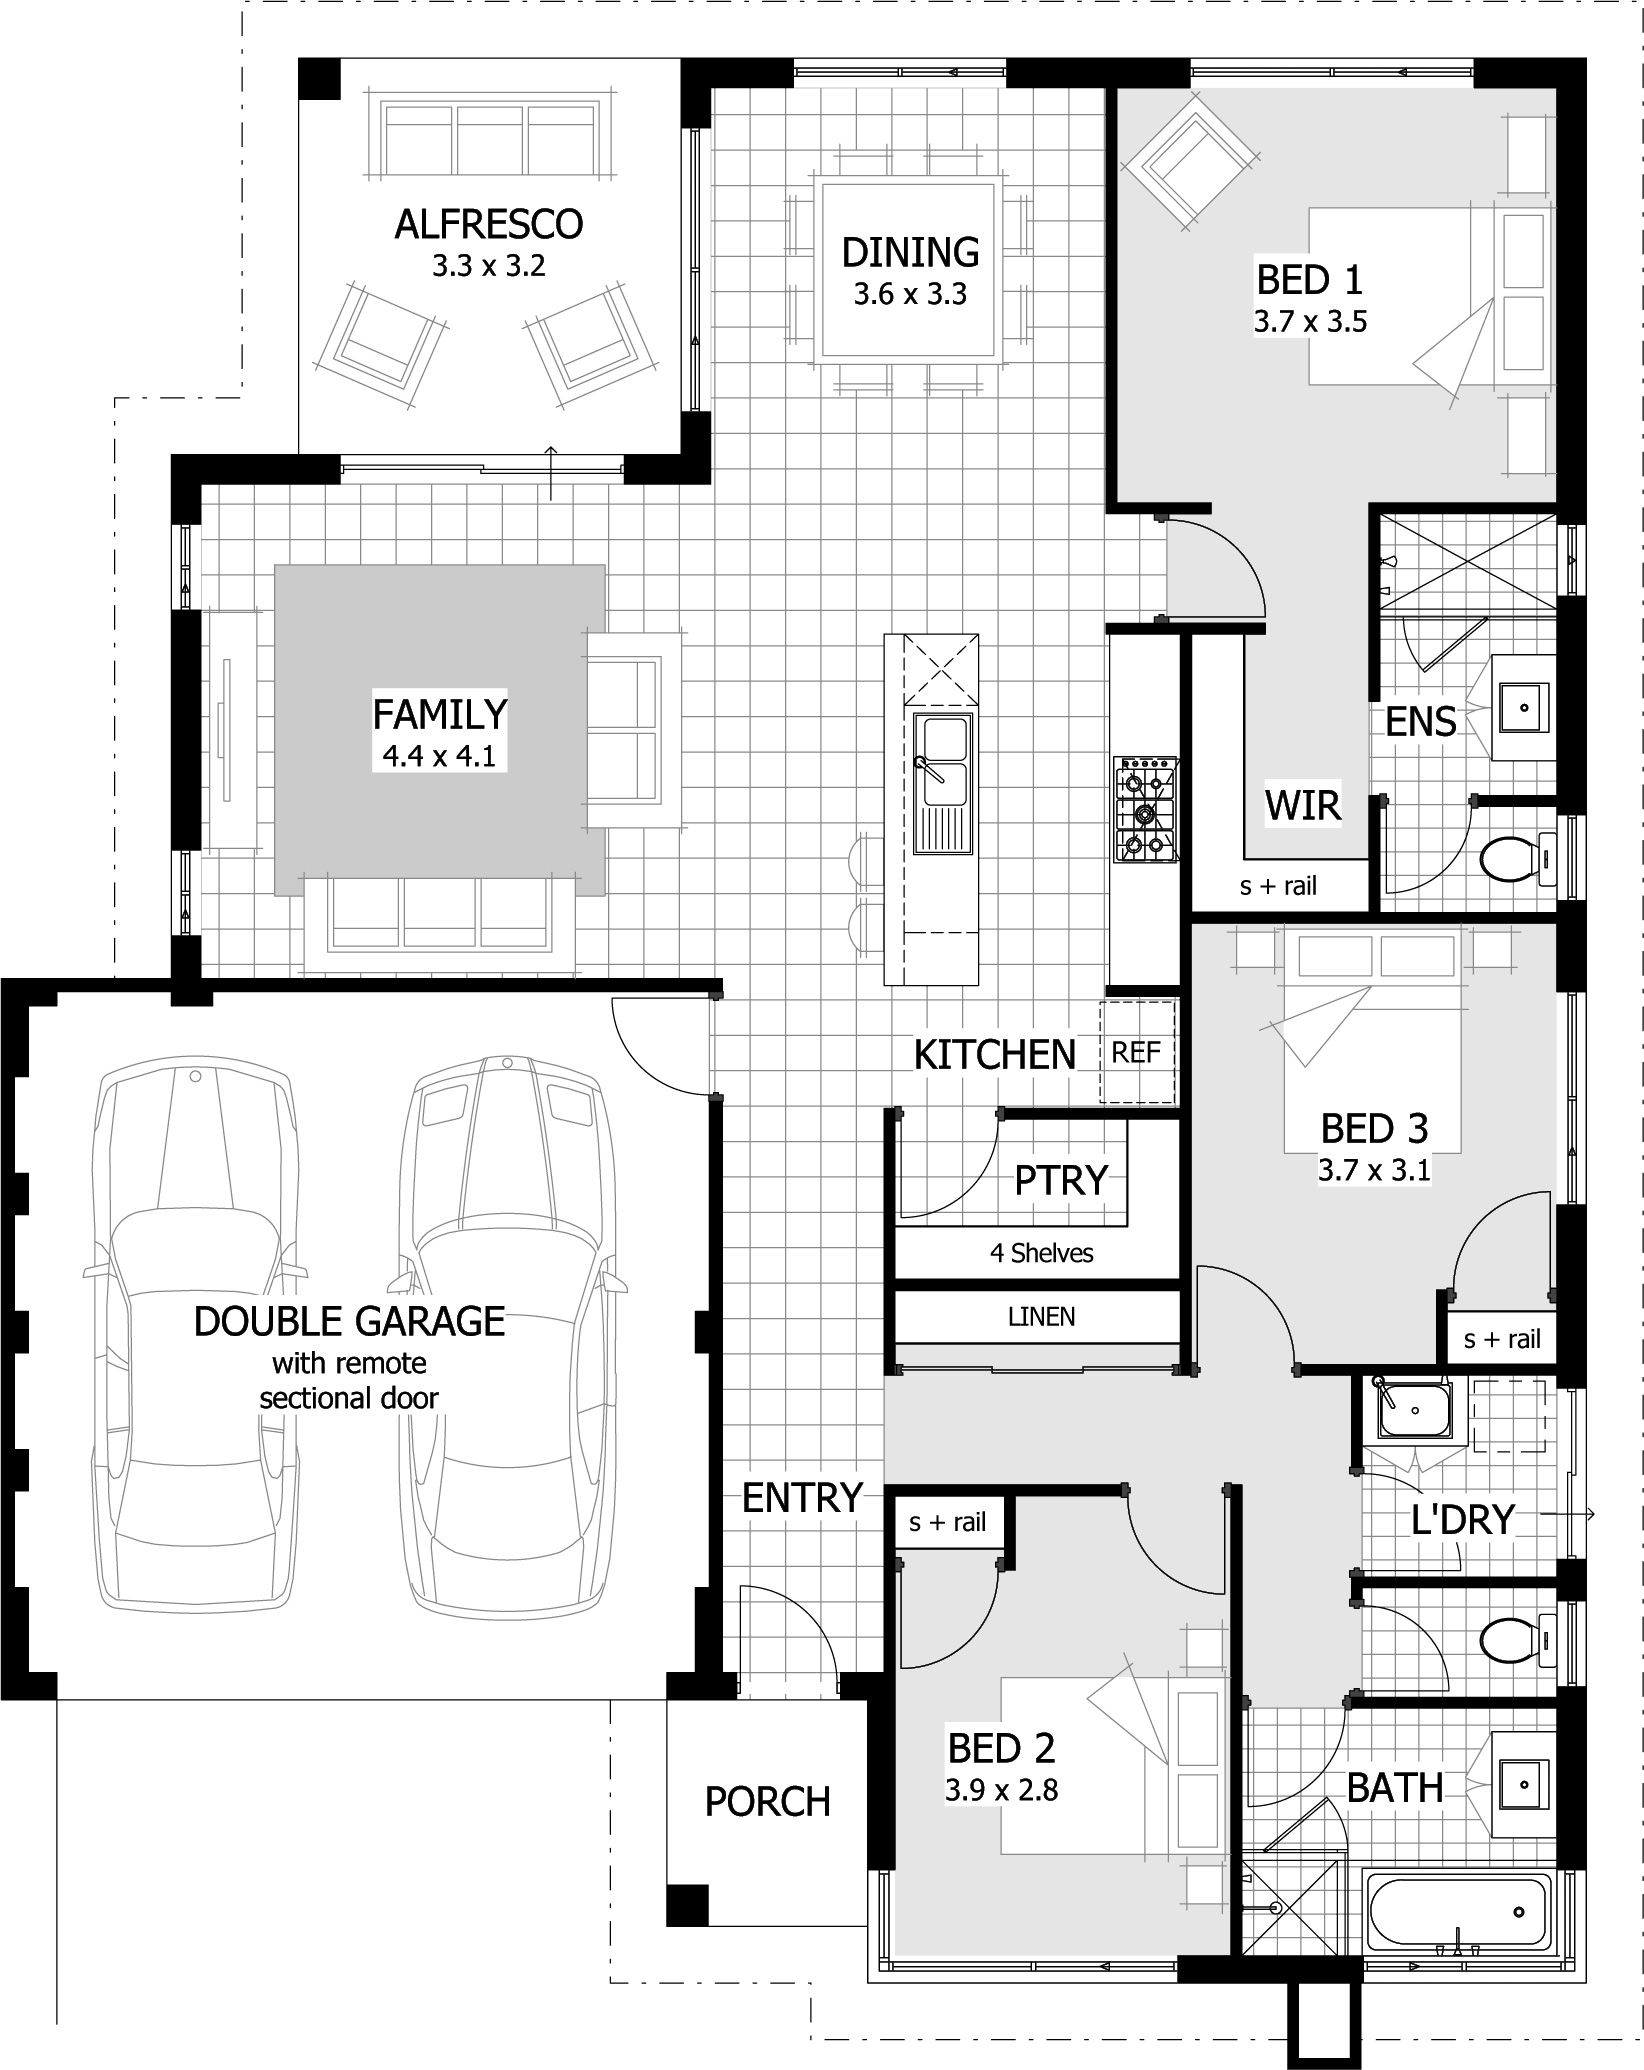 Find a 3 bedroom home thats right for your from our current range of home designs